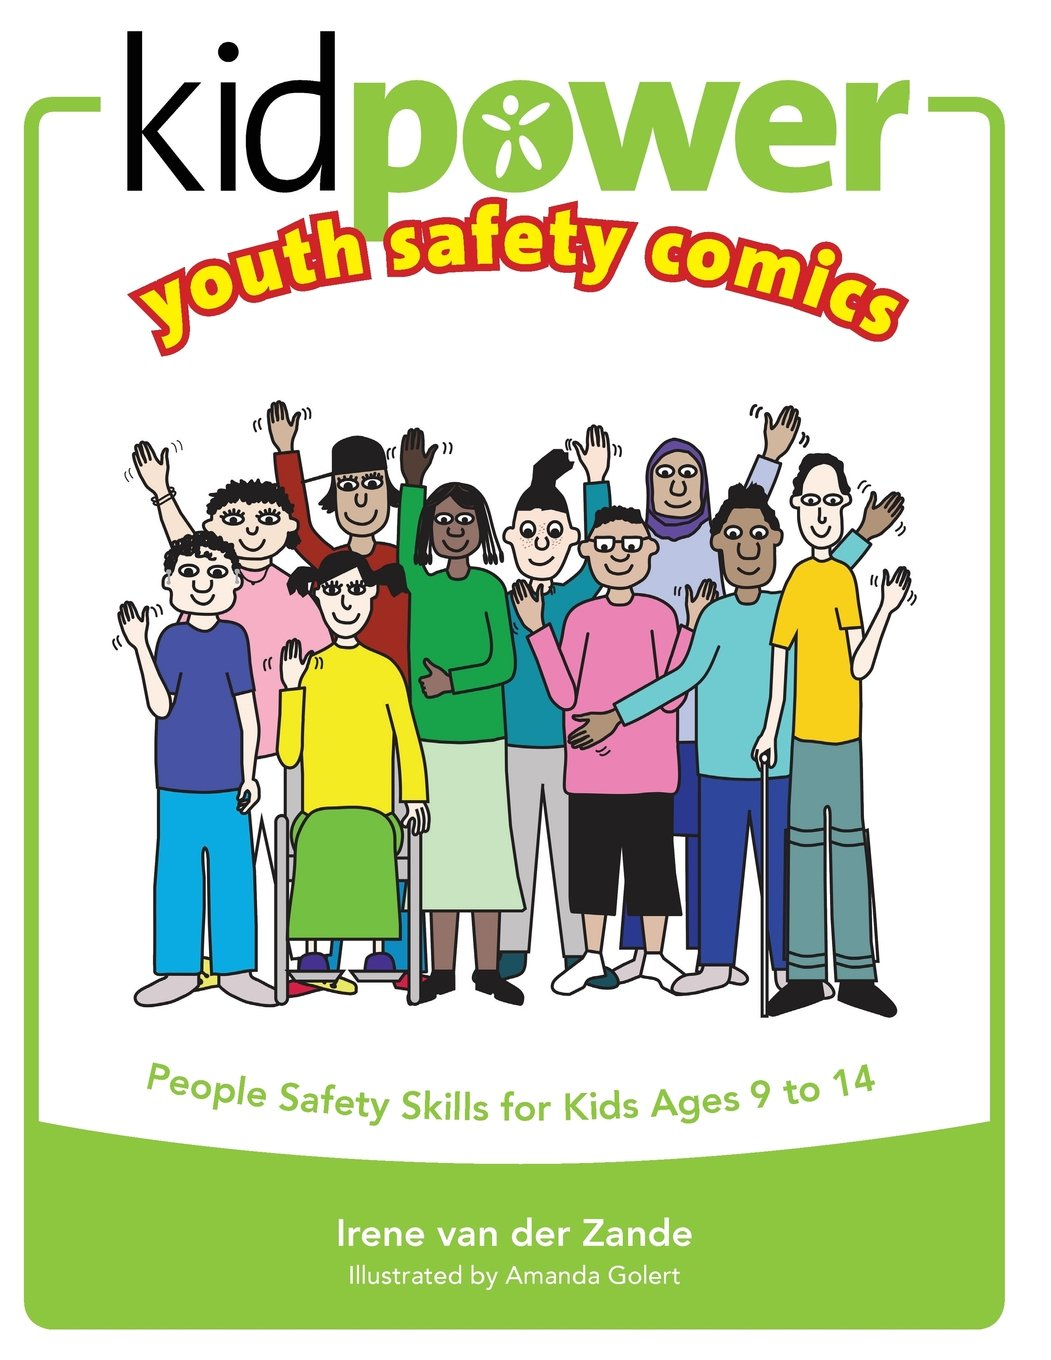 Kidpower Youth Safety Comics People